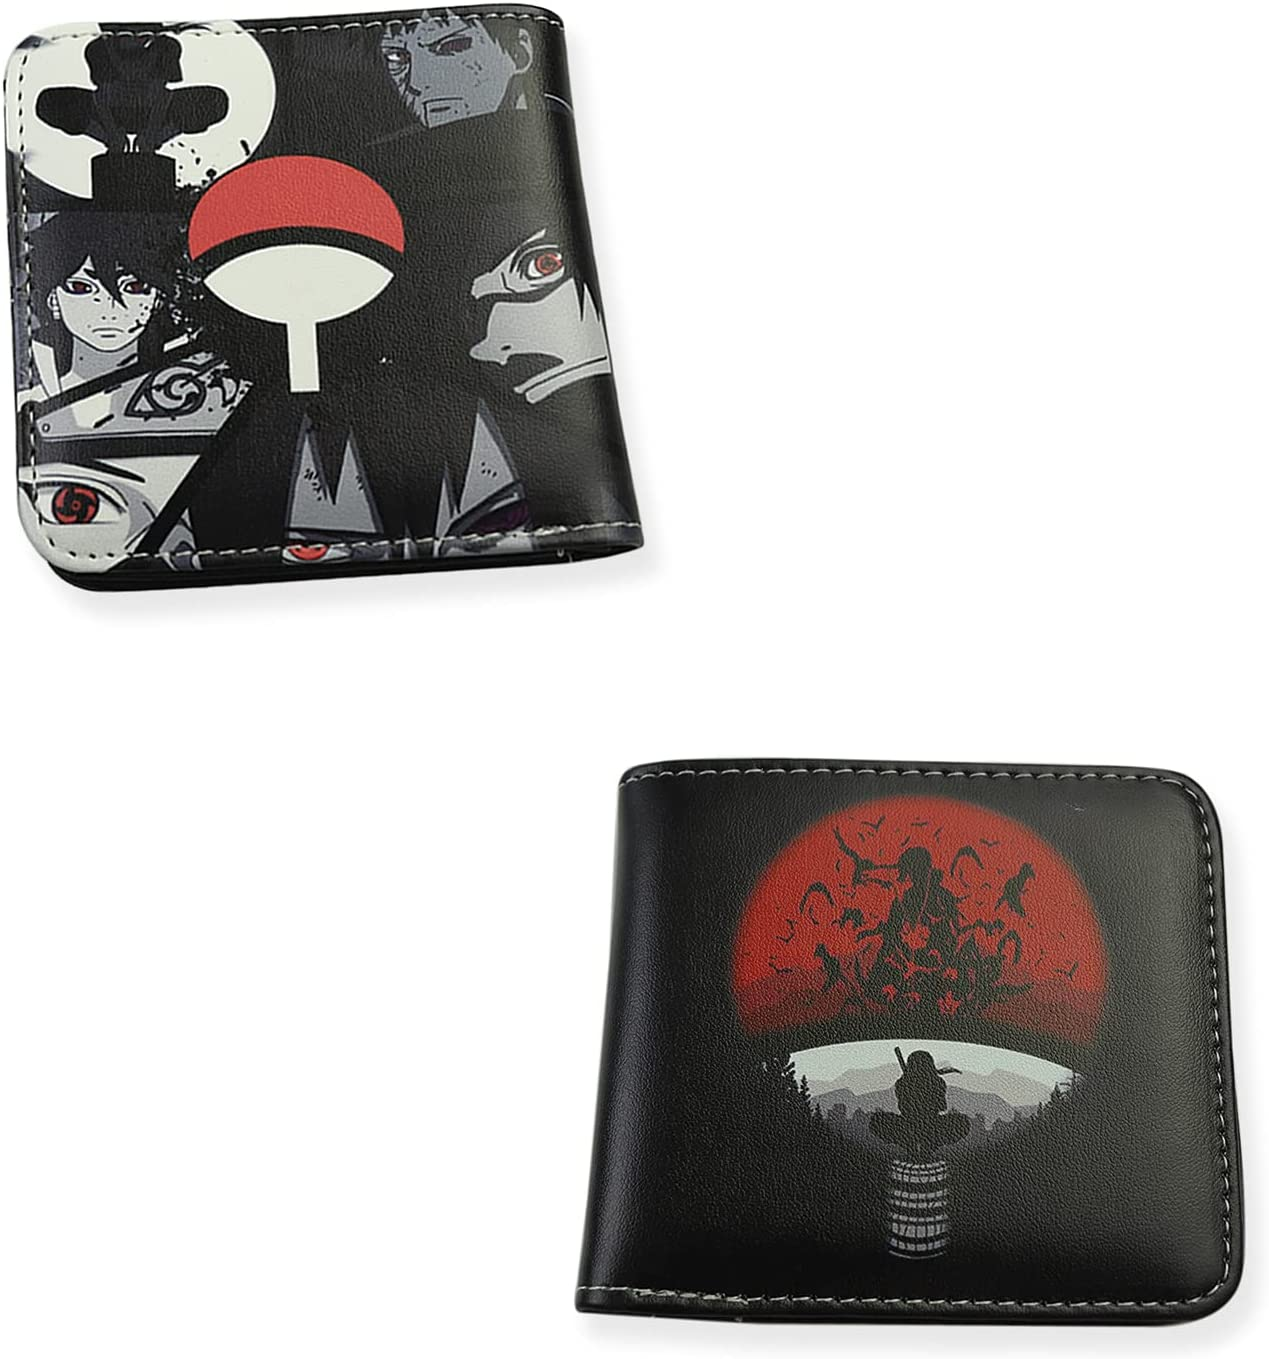 Anime Wallet Anime Bifold Leather Card Holder Purse Multi Color Birthday Gift